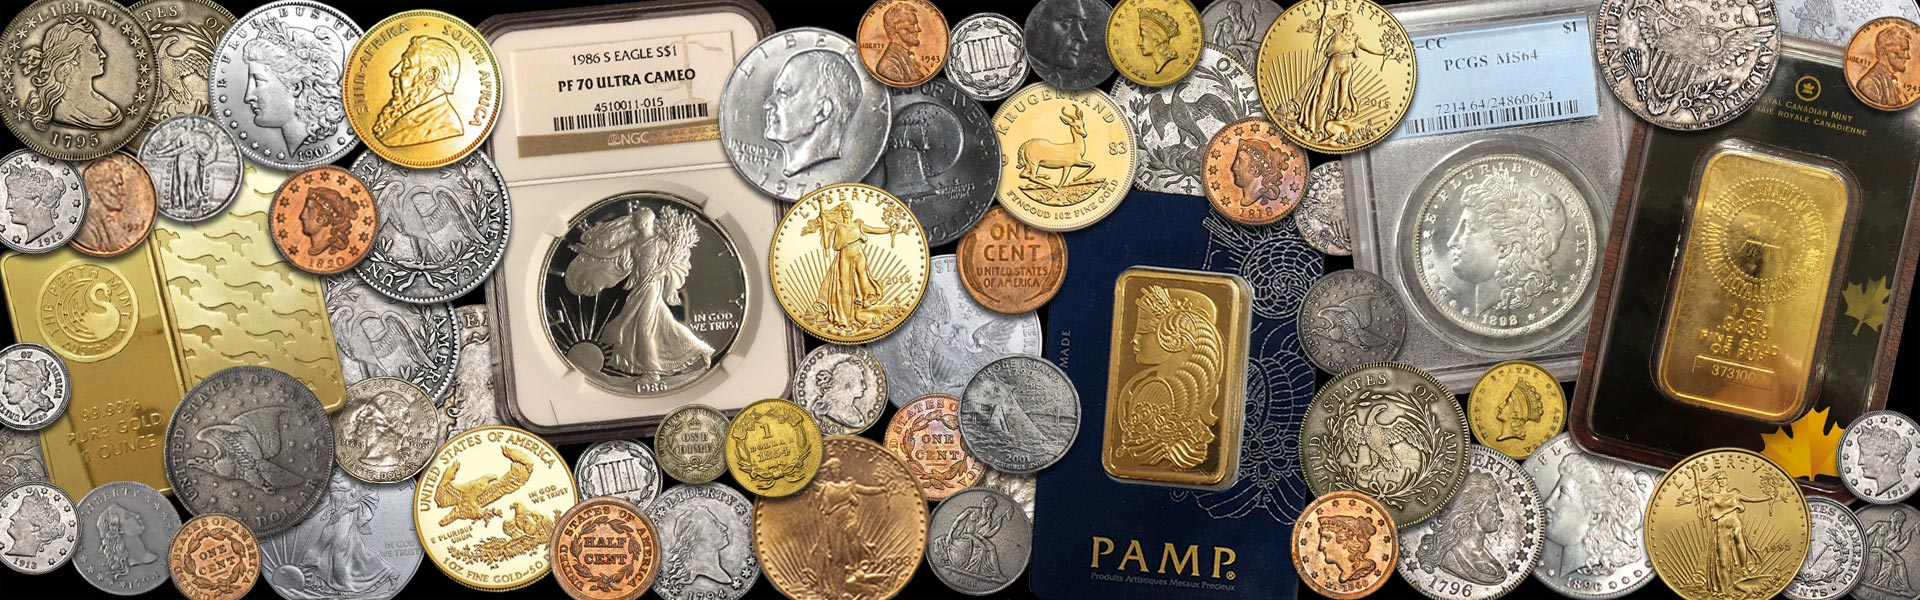 Can you spot the counterfeit coins and bars?